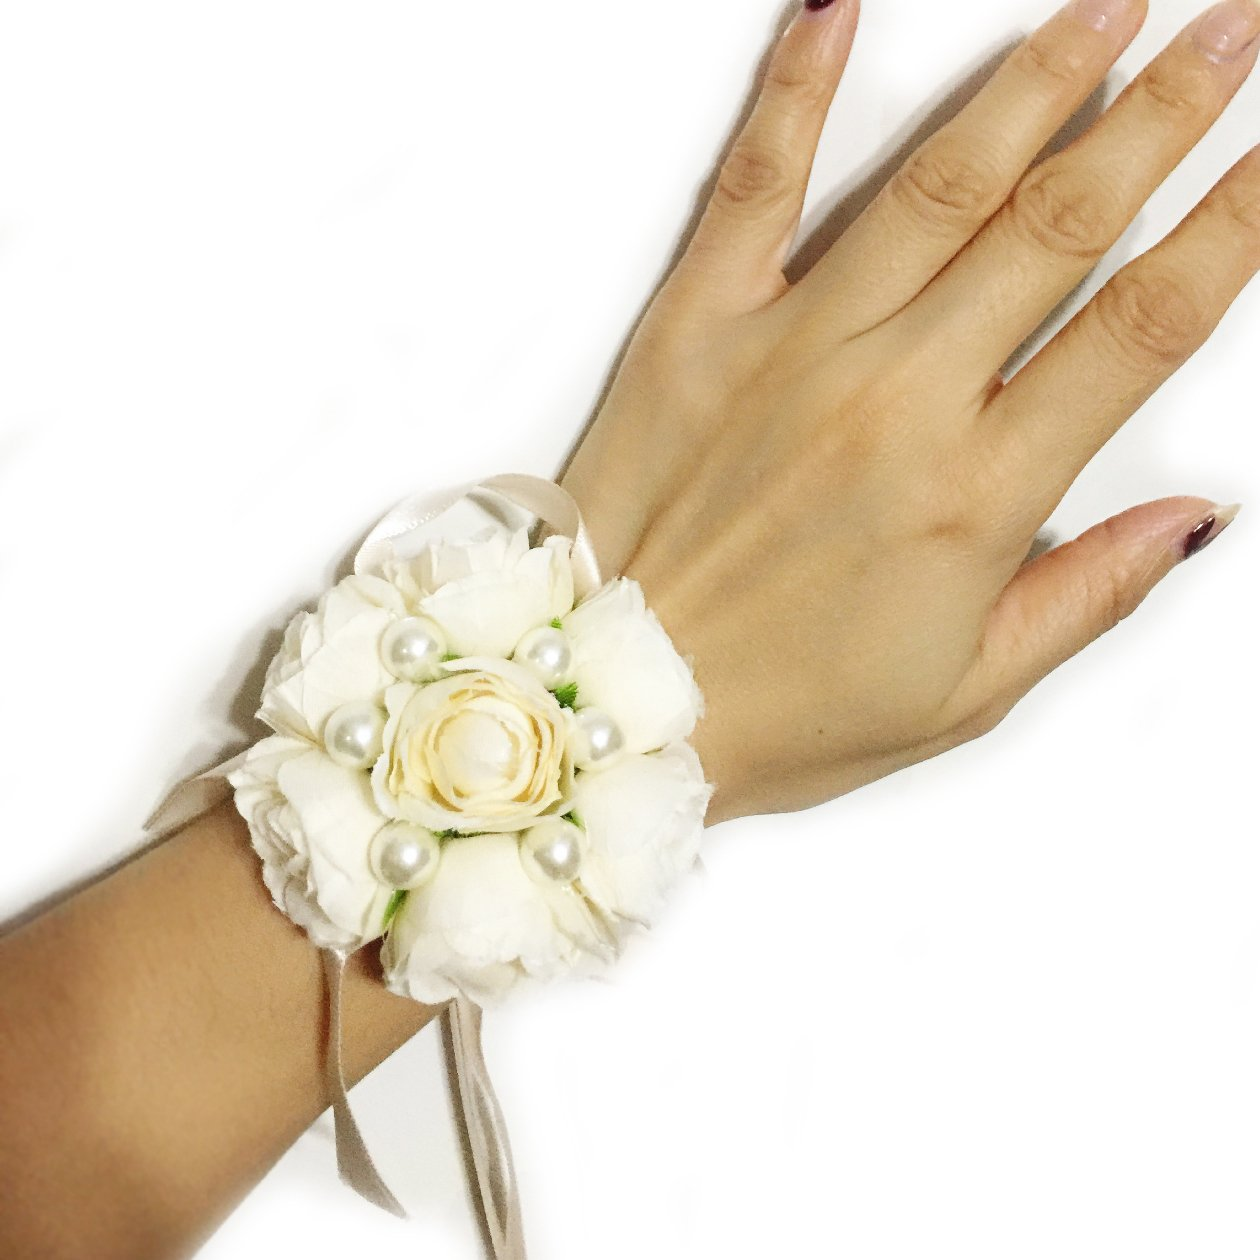 One-One-Bridal-Wedding-Bridal-Women-Girl-Bridesmaid-Exquisite-Floral-Hand-Wrist-Flower-T1218-Champagne